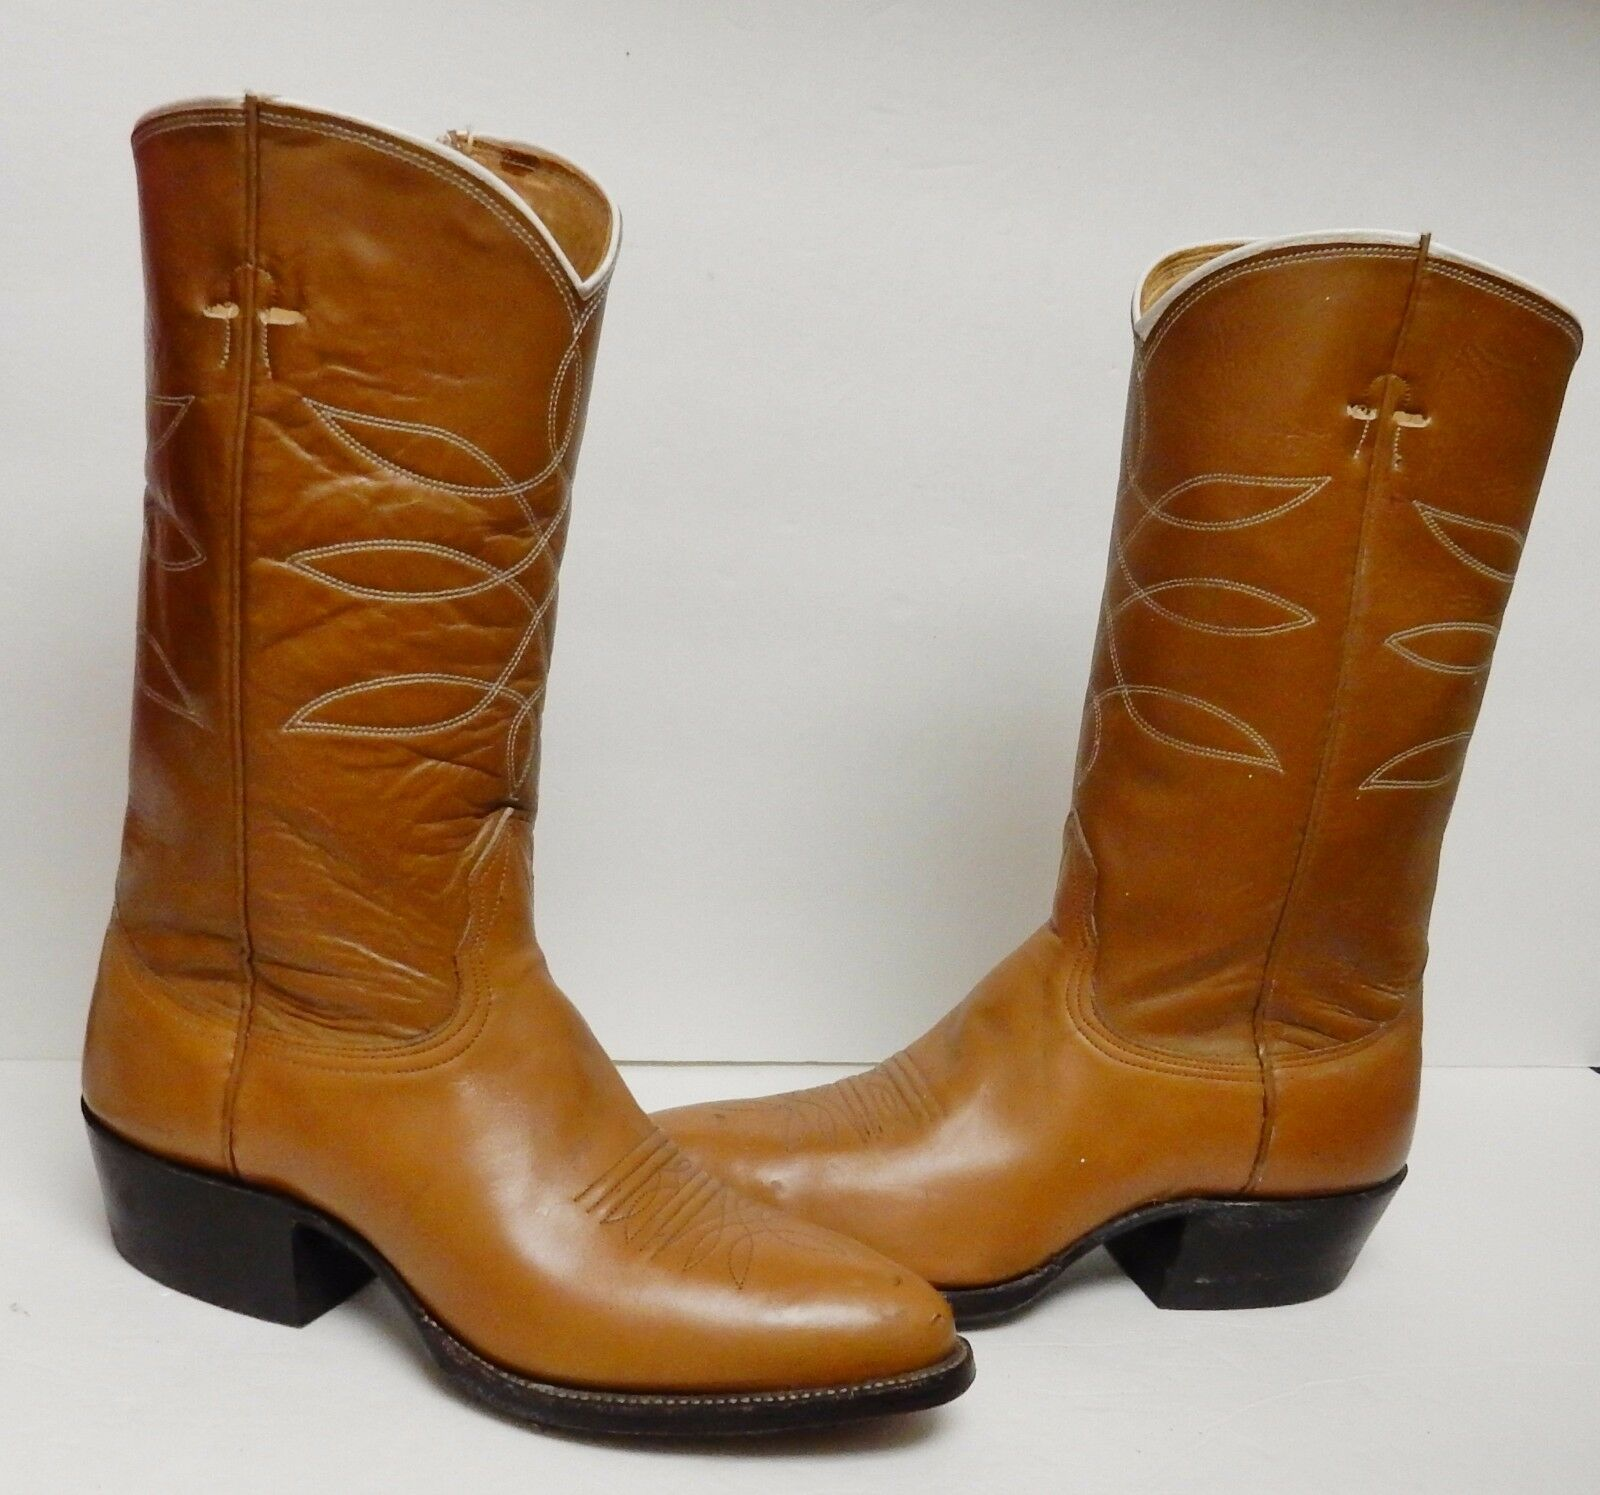 Nocona Leather Boots Cowboy Western Rodeo Tan Caramel 8.5 D